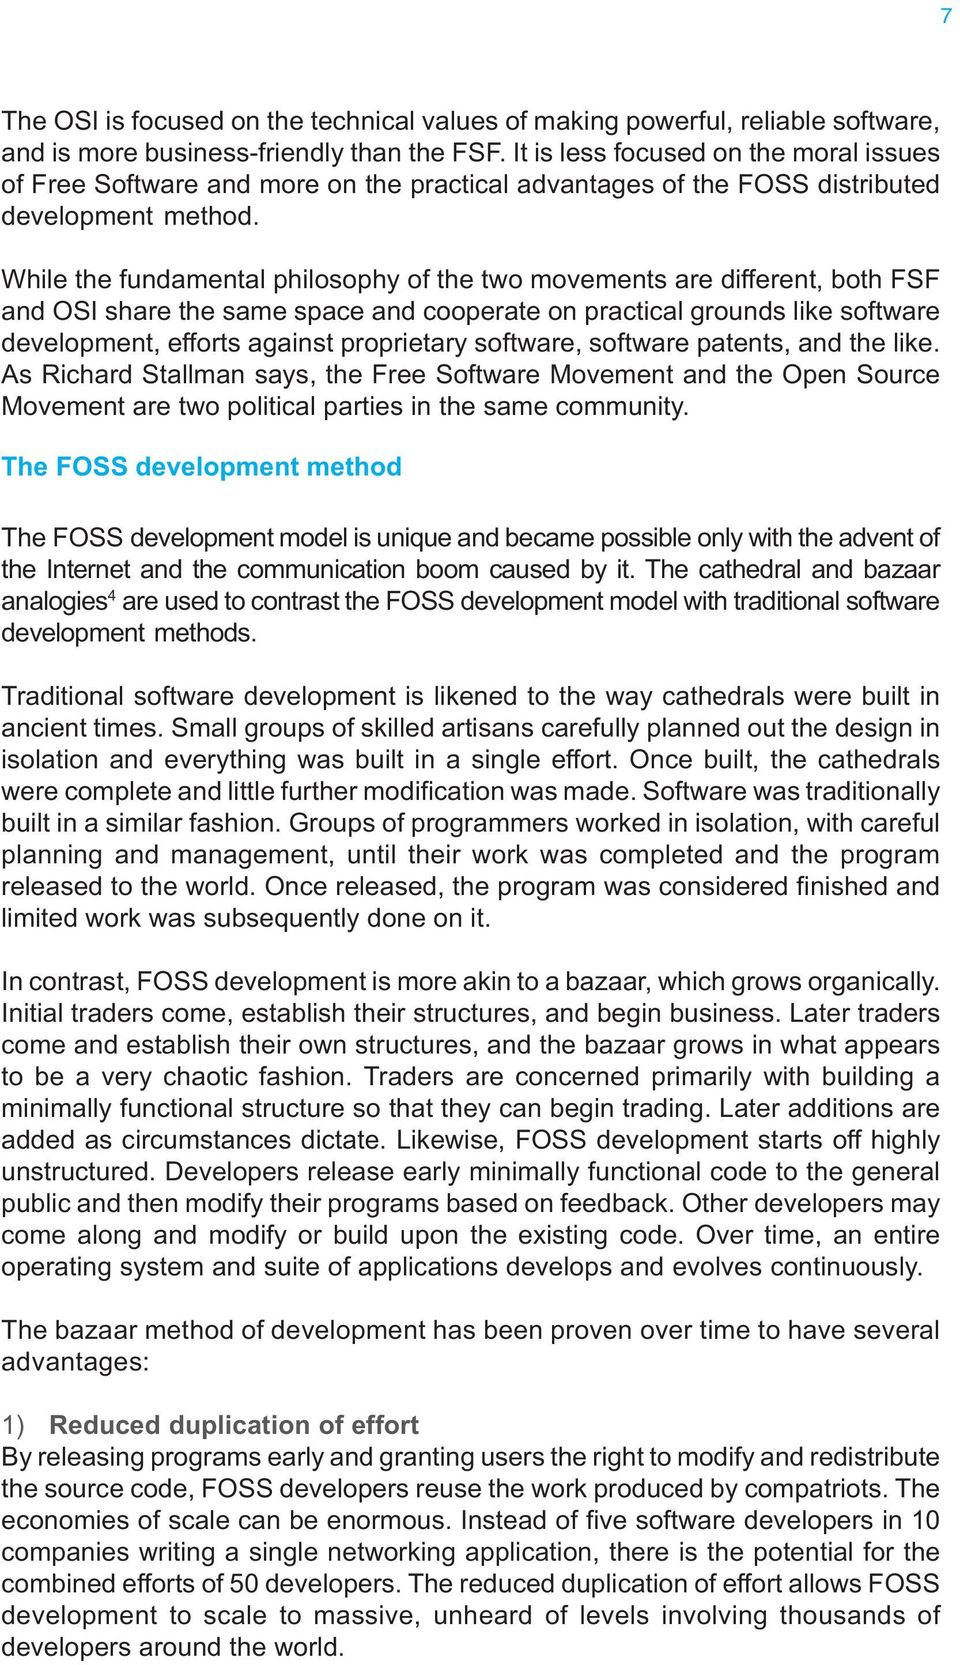 While the fundamental philosophy of the two movements are different, both FSF and OSI share the same space and cooperate on practical grounds like software development, efforts against proprietary